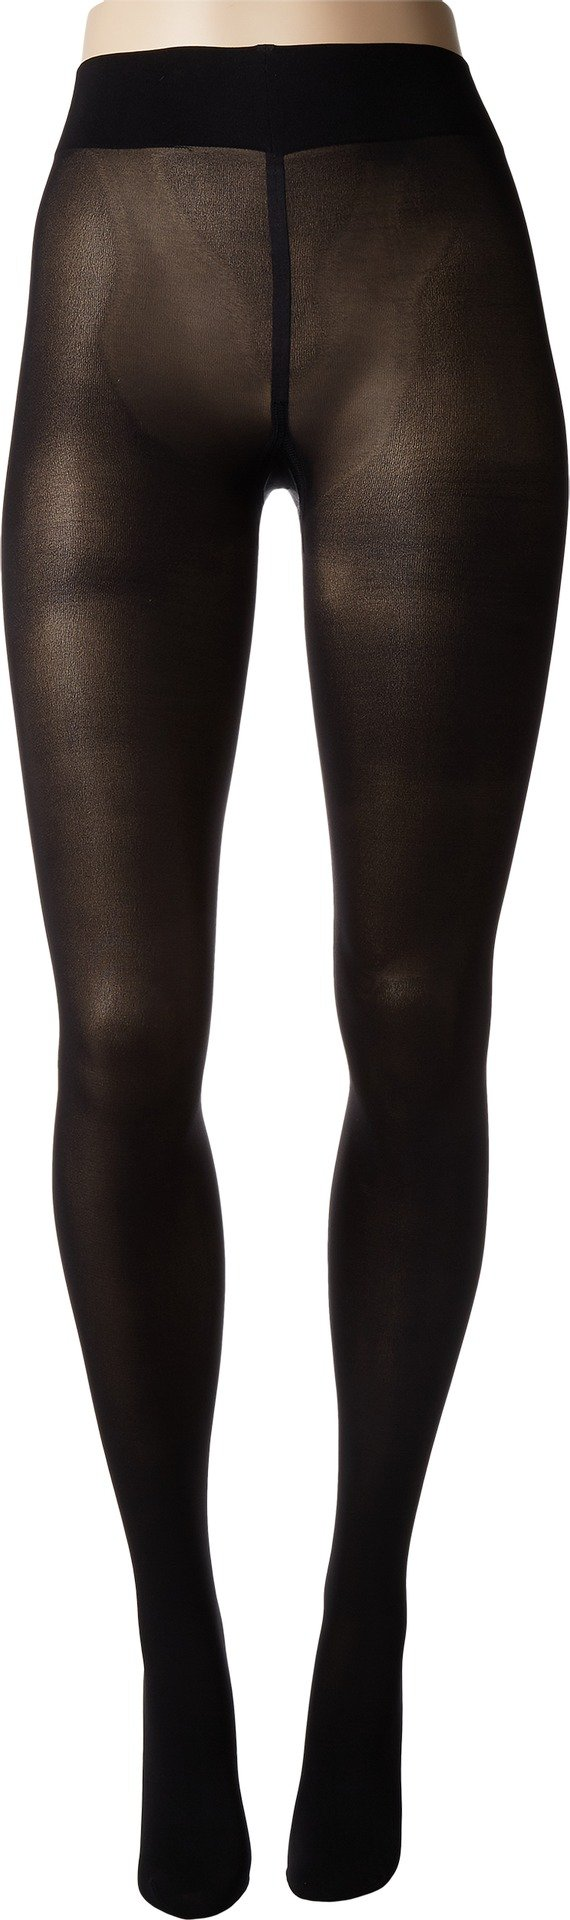 Wolford Women's Pearl Back Seam Tights Black/Pearl Large by Wolford (Image #1)